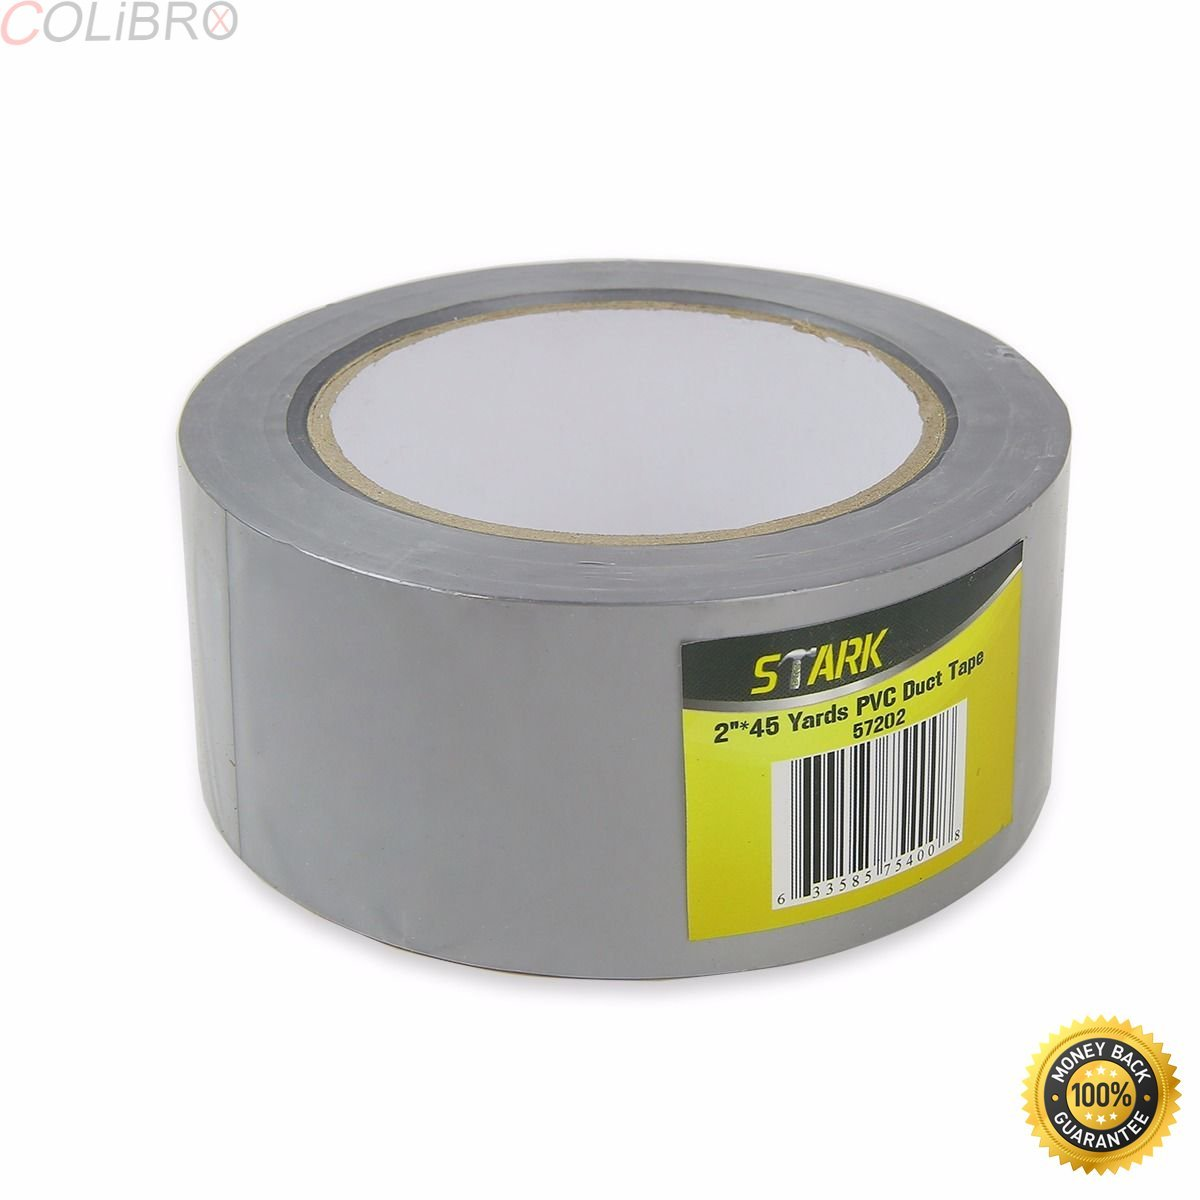 "COLIBROX--Touch Duct Tape Multi-use 2"" x 45 Yard Grey Repair Wrapping Sealing Protecting. Utility-grade duct tape offers polyethylene-coated cloth with rubber adhesive and low-tack edges."